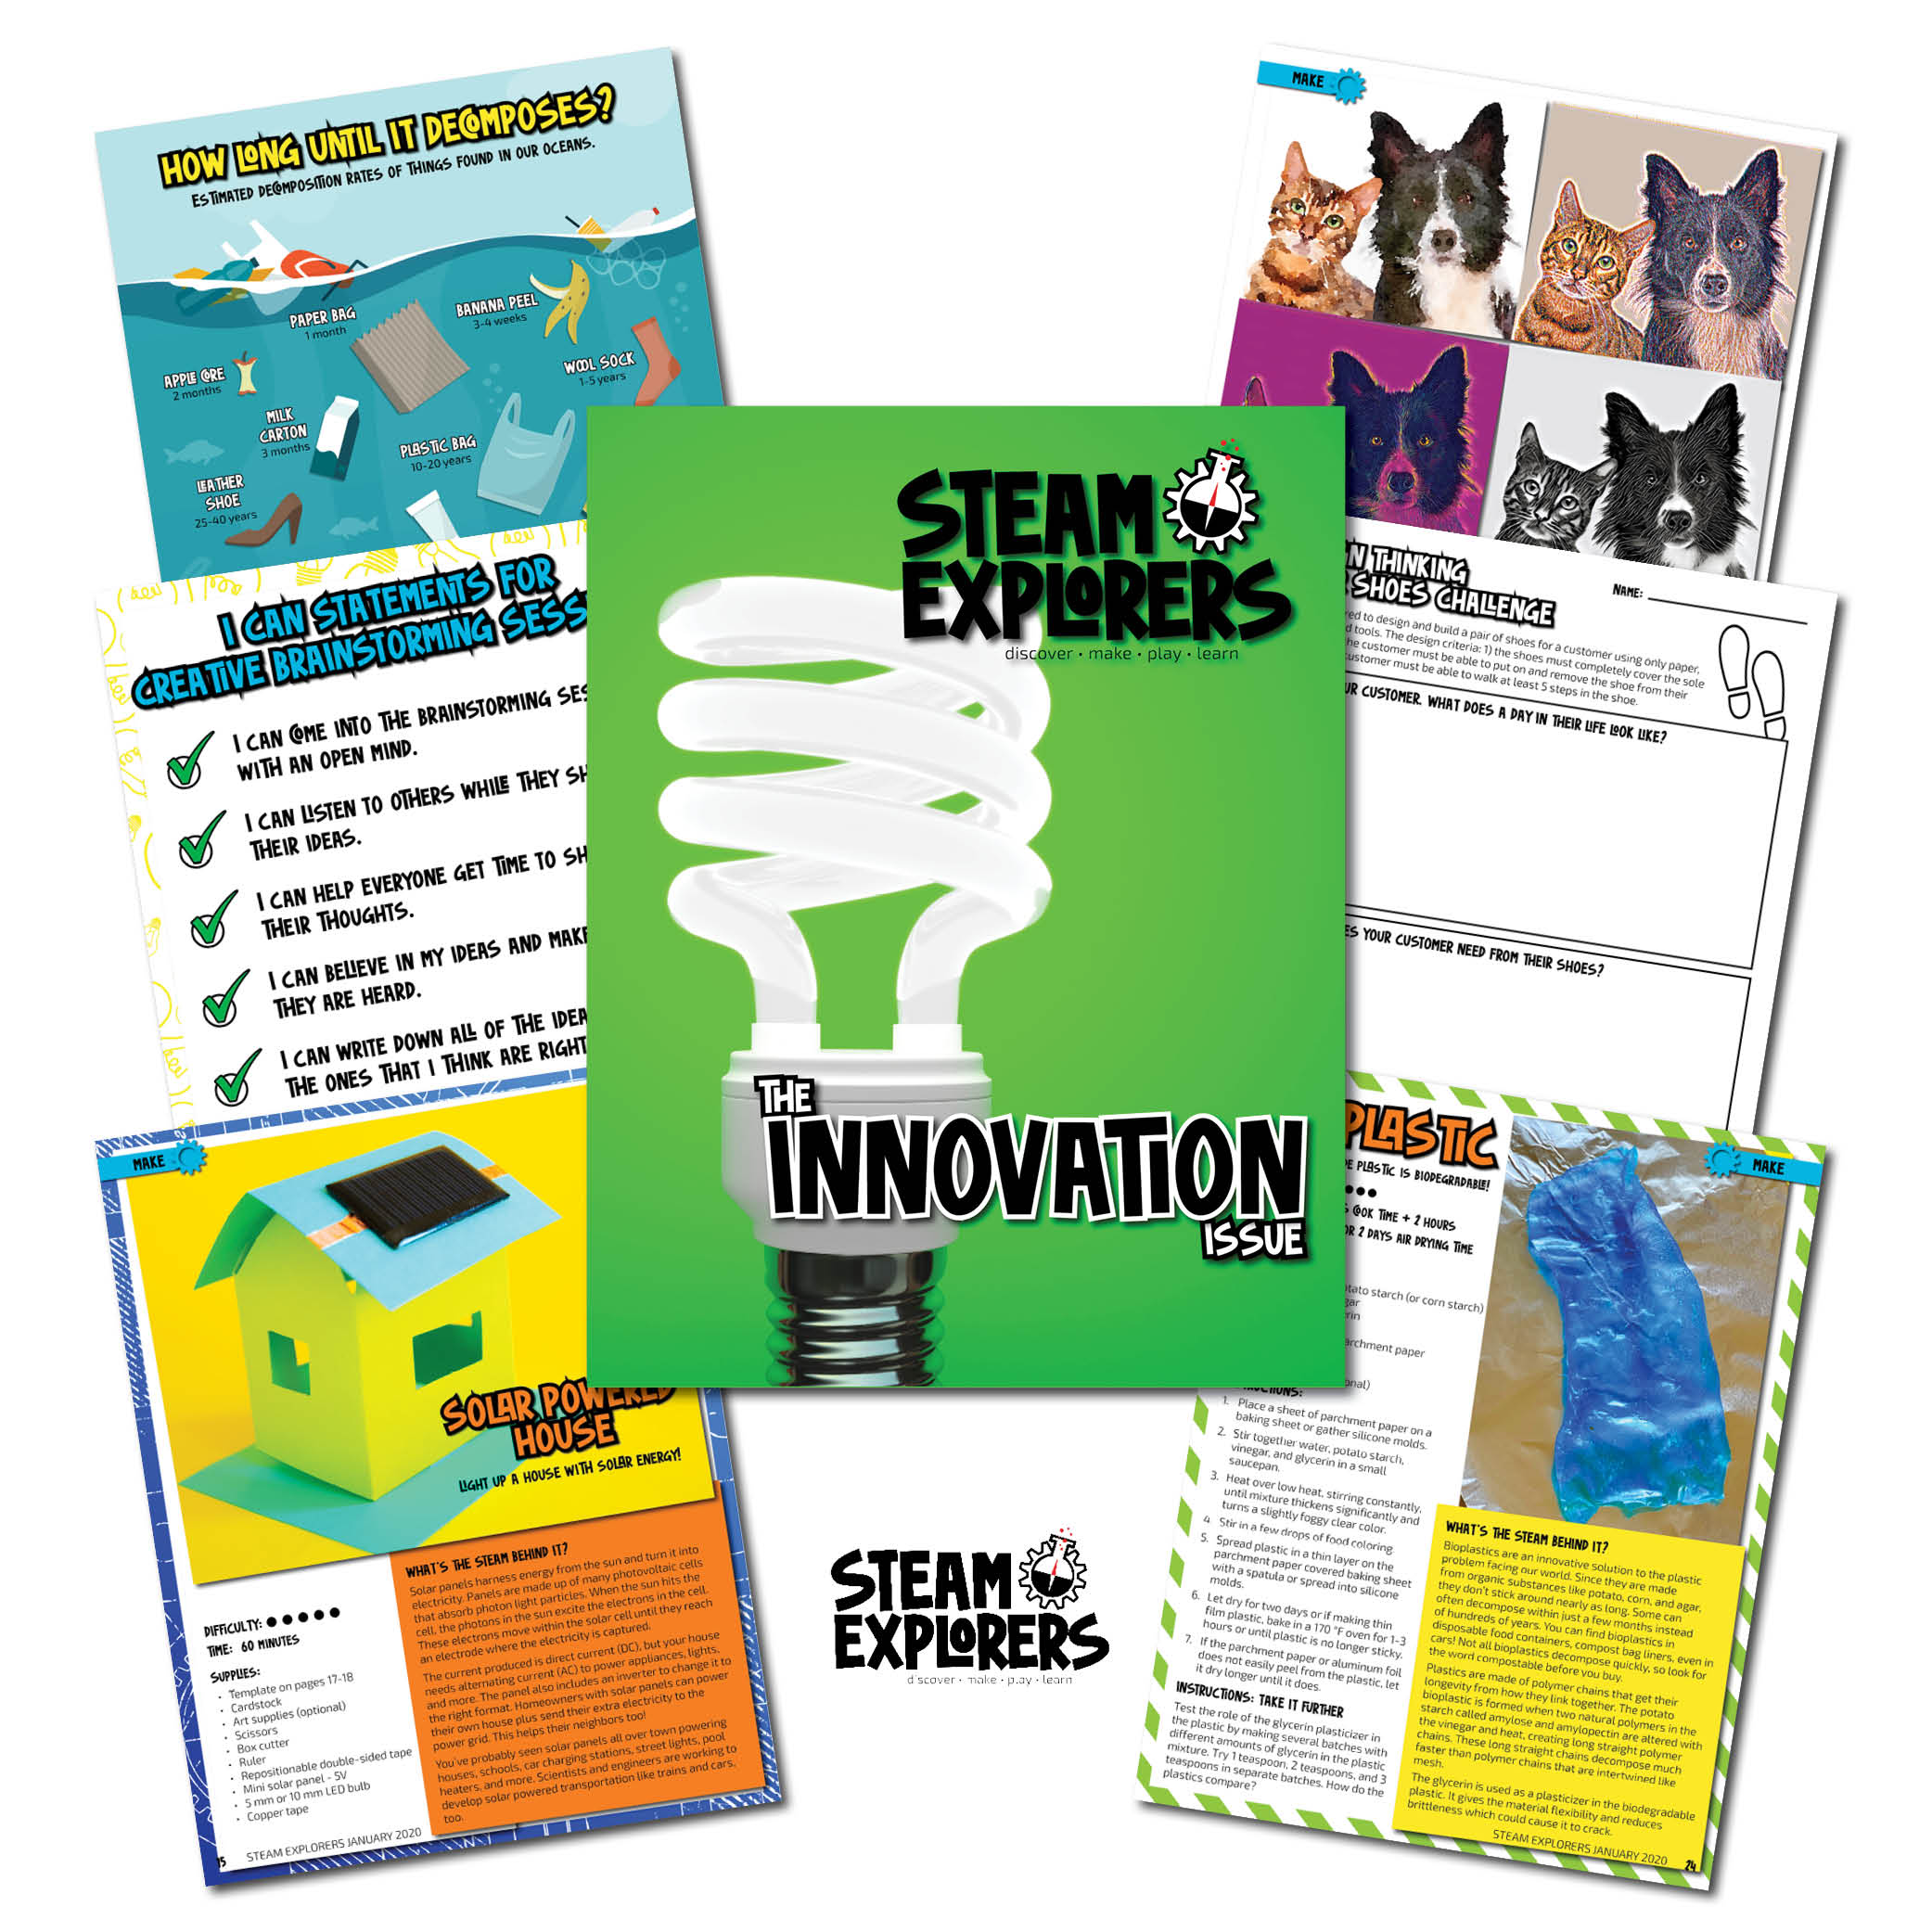 Whats Inside - January 2020 Innovation STEAM Explorers Issue - No Copy v2